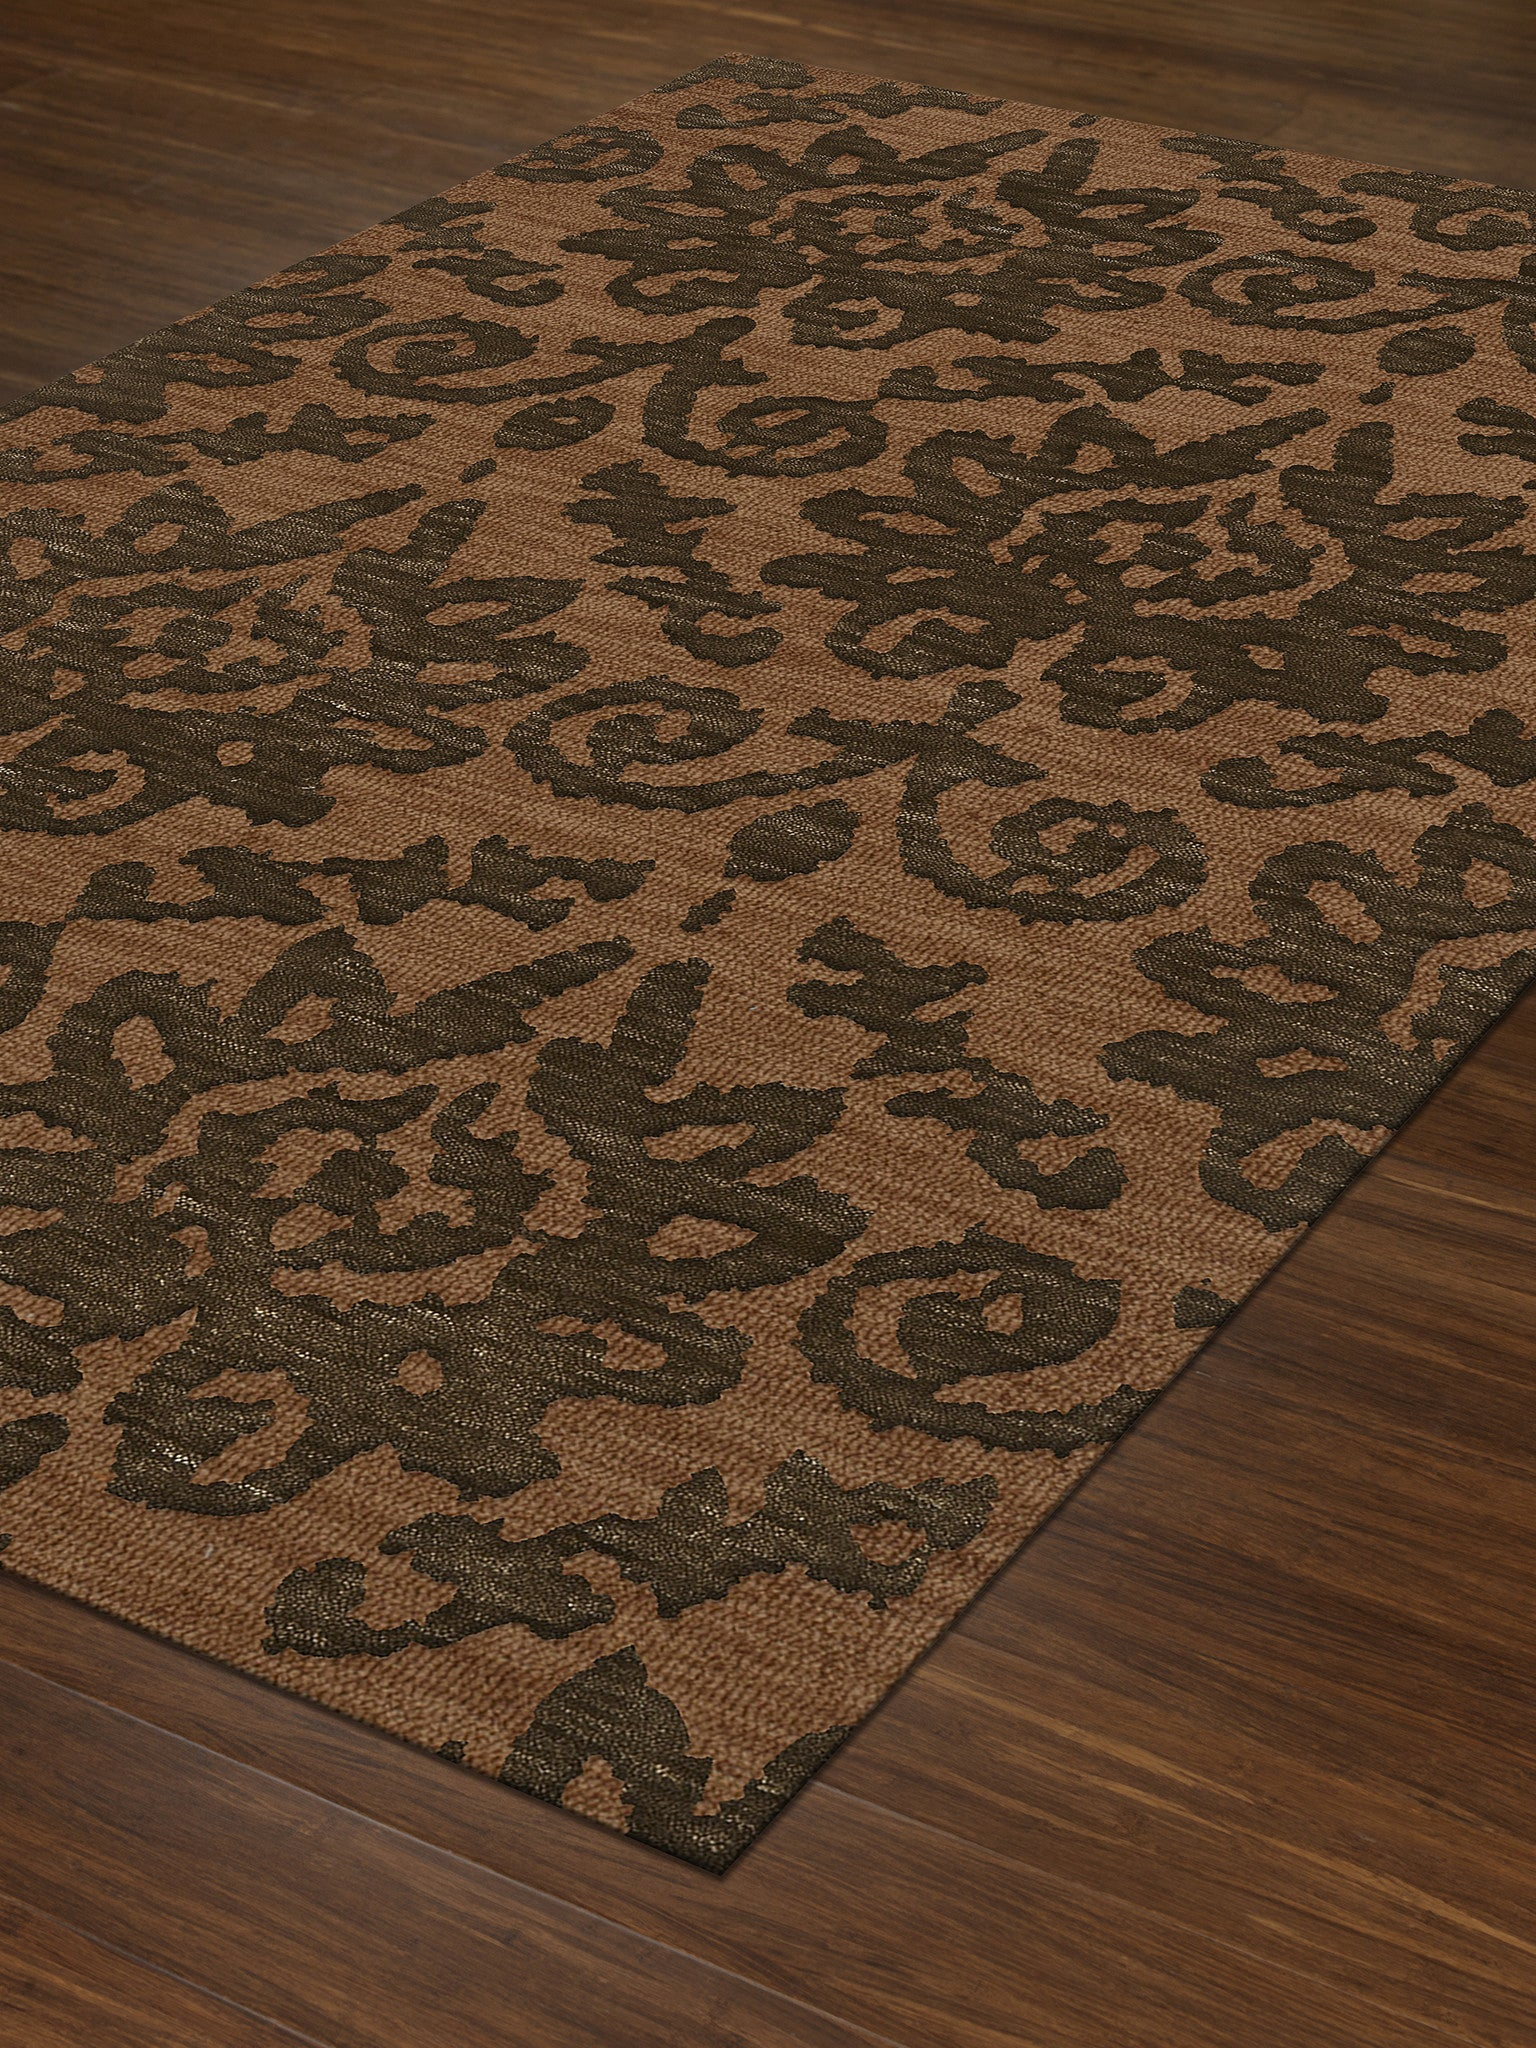 Dalyn bella leather bl10 area rug rugmethod for Leather flooring cost